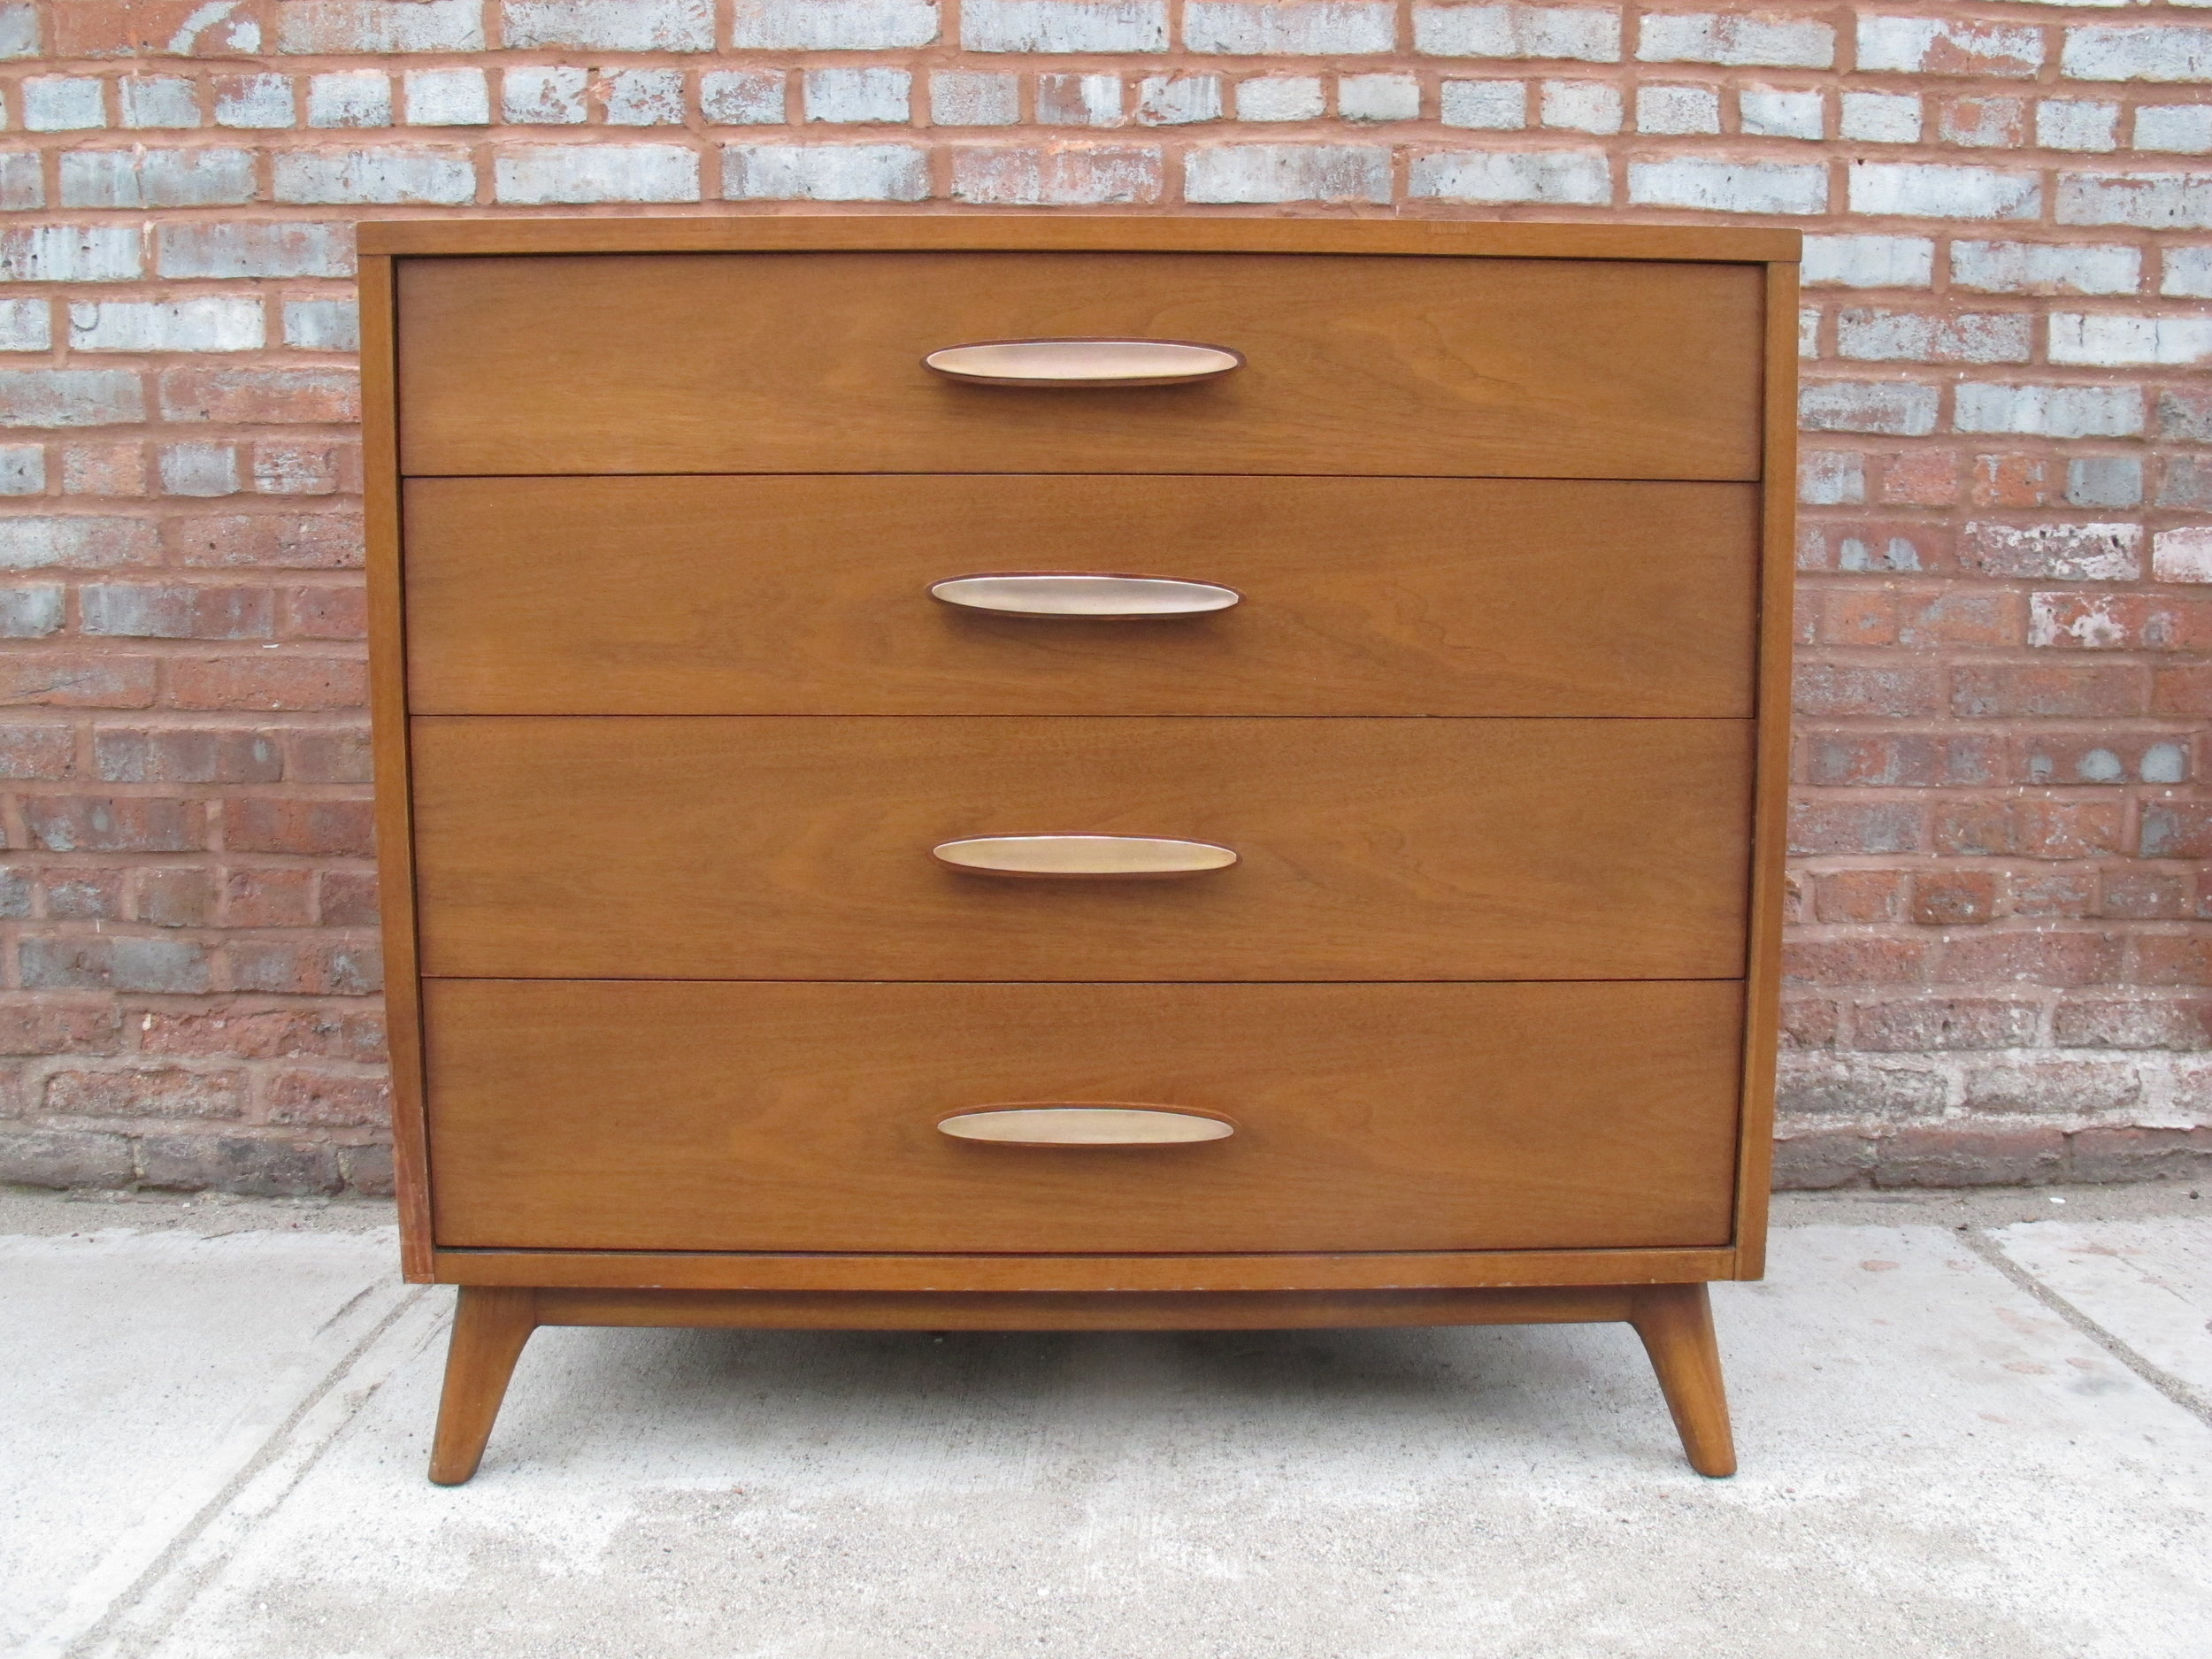 MID CENTURY WALNUT CHEST OF DRAWERS BY HERITAGE HENREDON